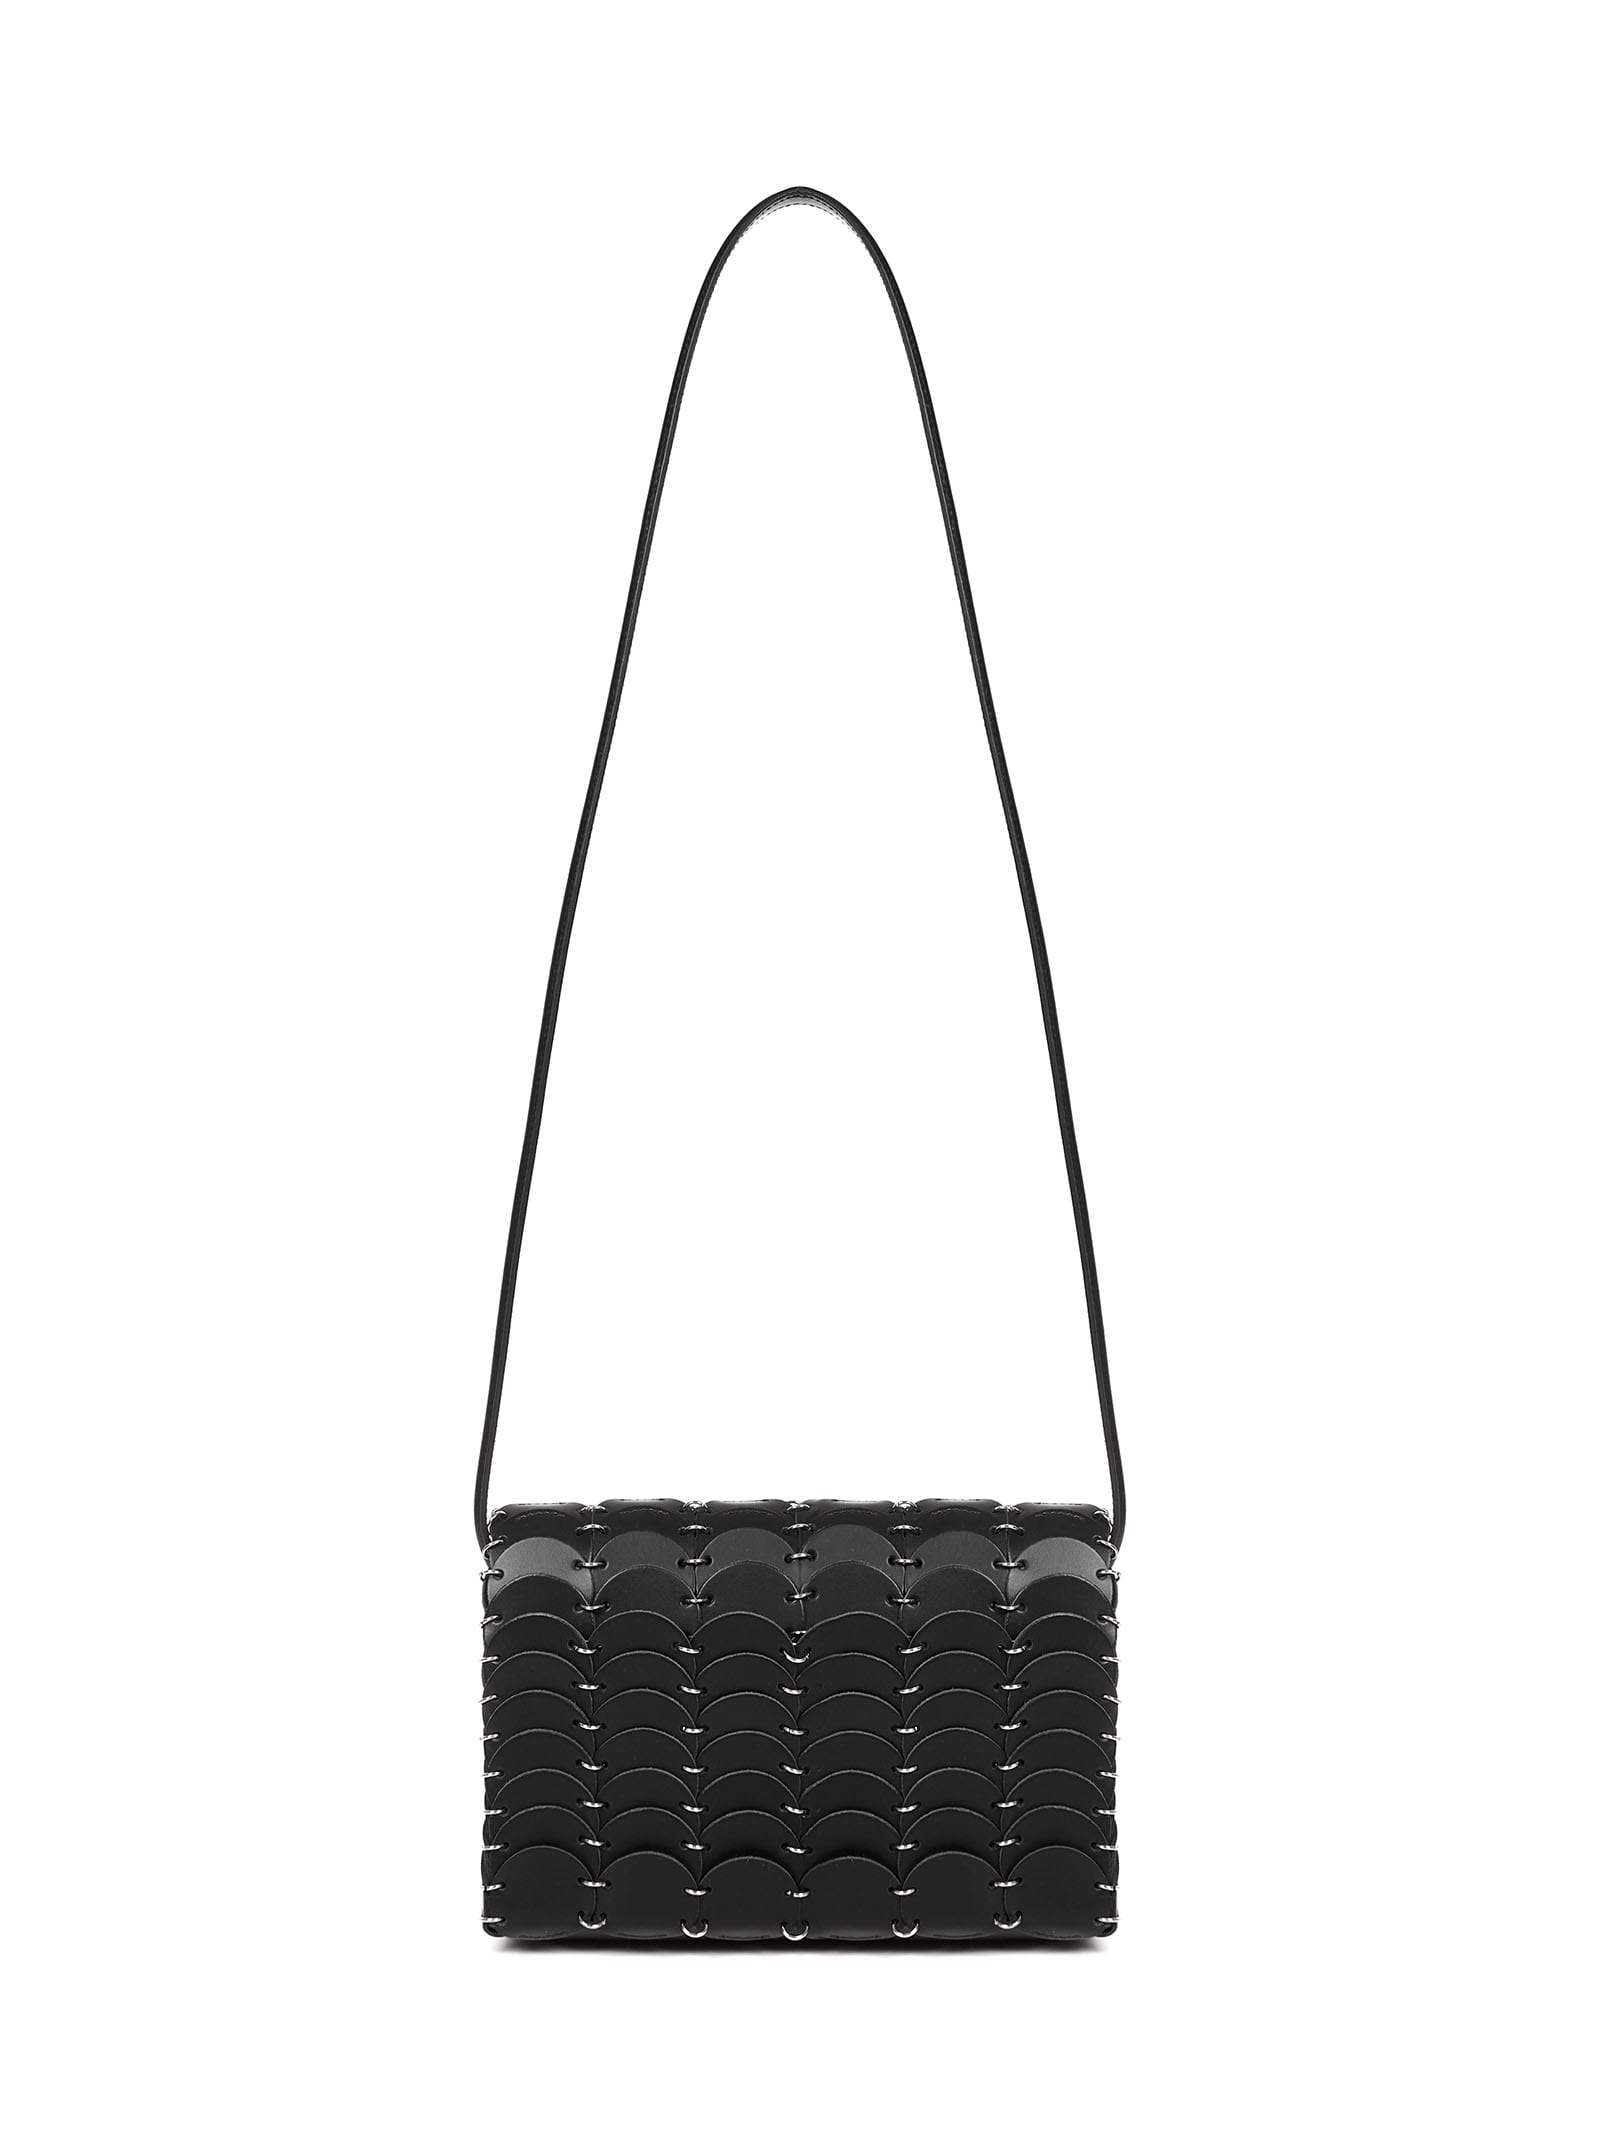 Paco Rabanne Pacoïo Shoulder Bag